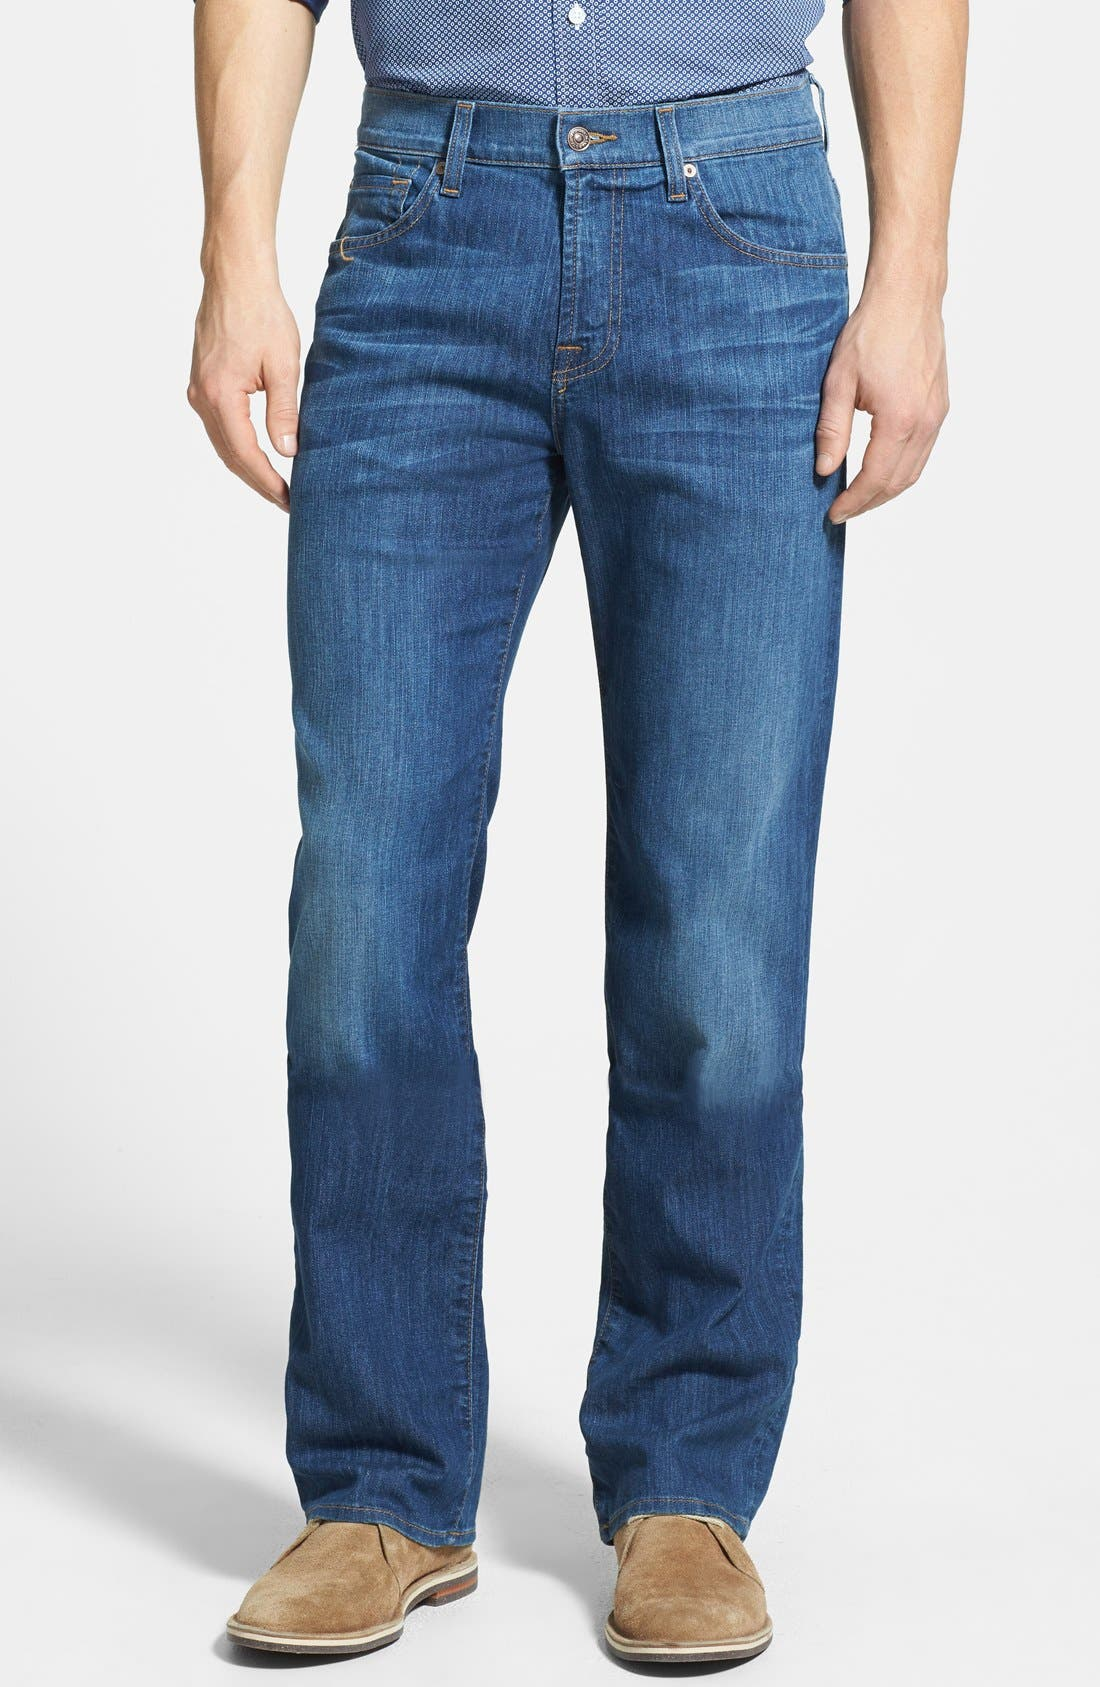 Alternate Image 1 Selected - 7 For All Mankind® 'Austyn' Relaxed Fit Jeans (Mountak Lake)